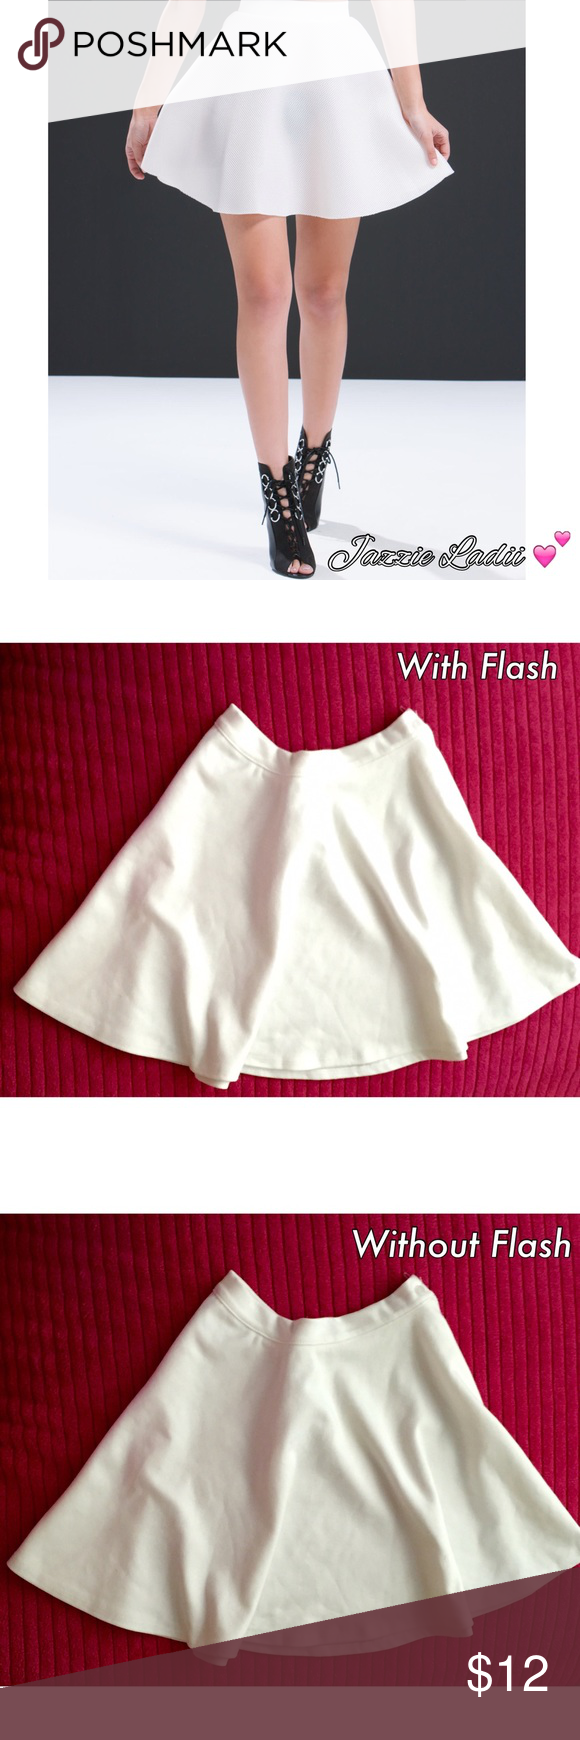 Ivory Cotton Skater Skirt • Size S 💕 Ivory Cotton Skater Skirt • Size S • Side Button Closure • Great Condition • ONE DAY SALE !!! Skirts Circle & Skater